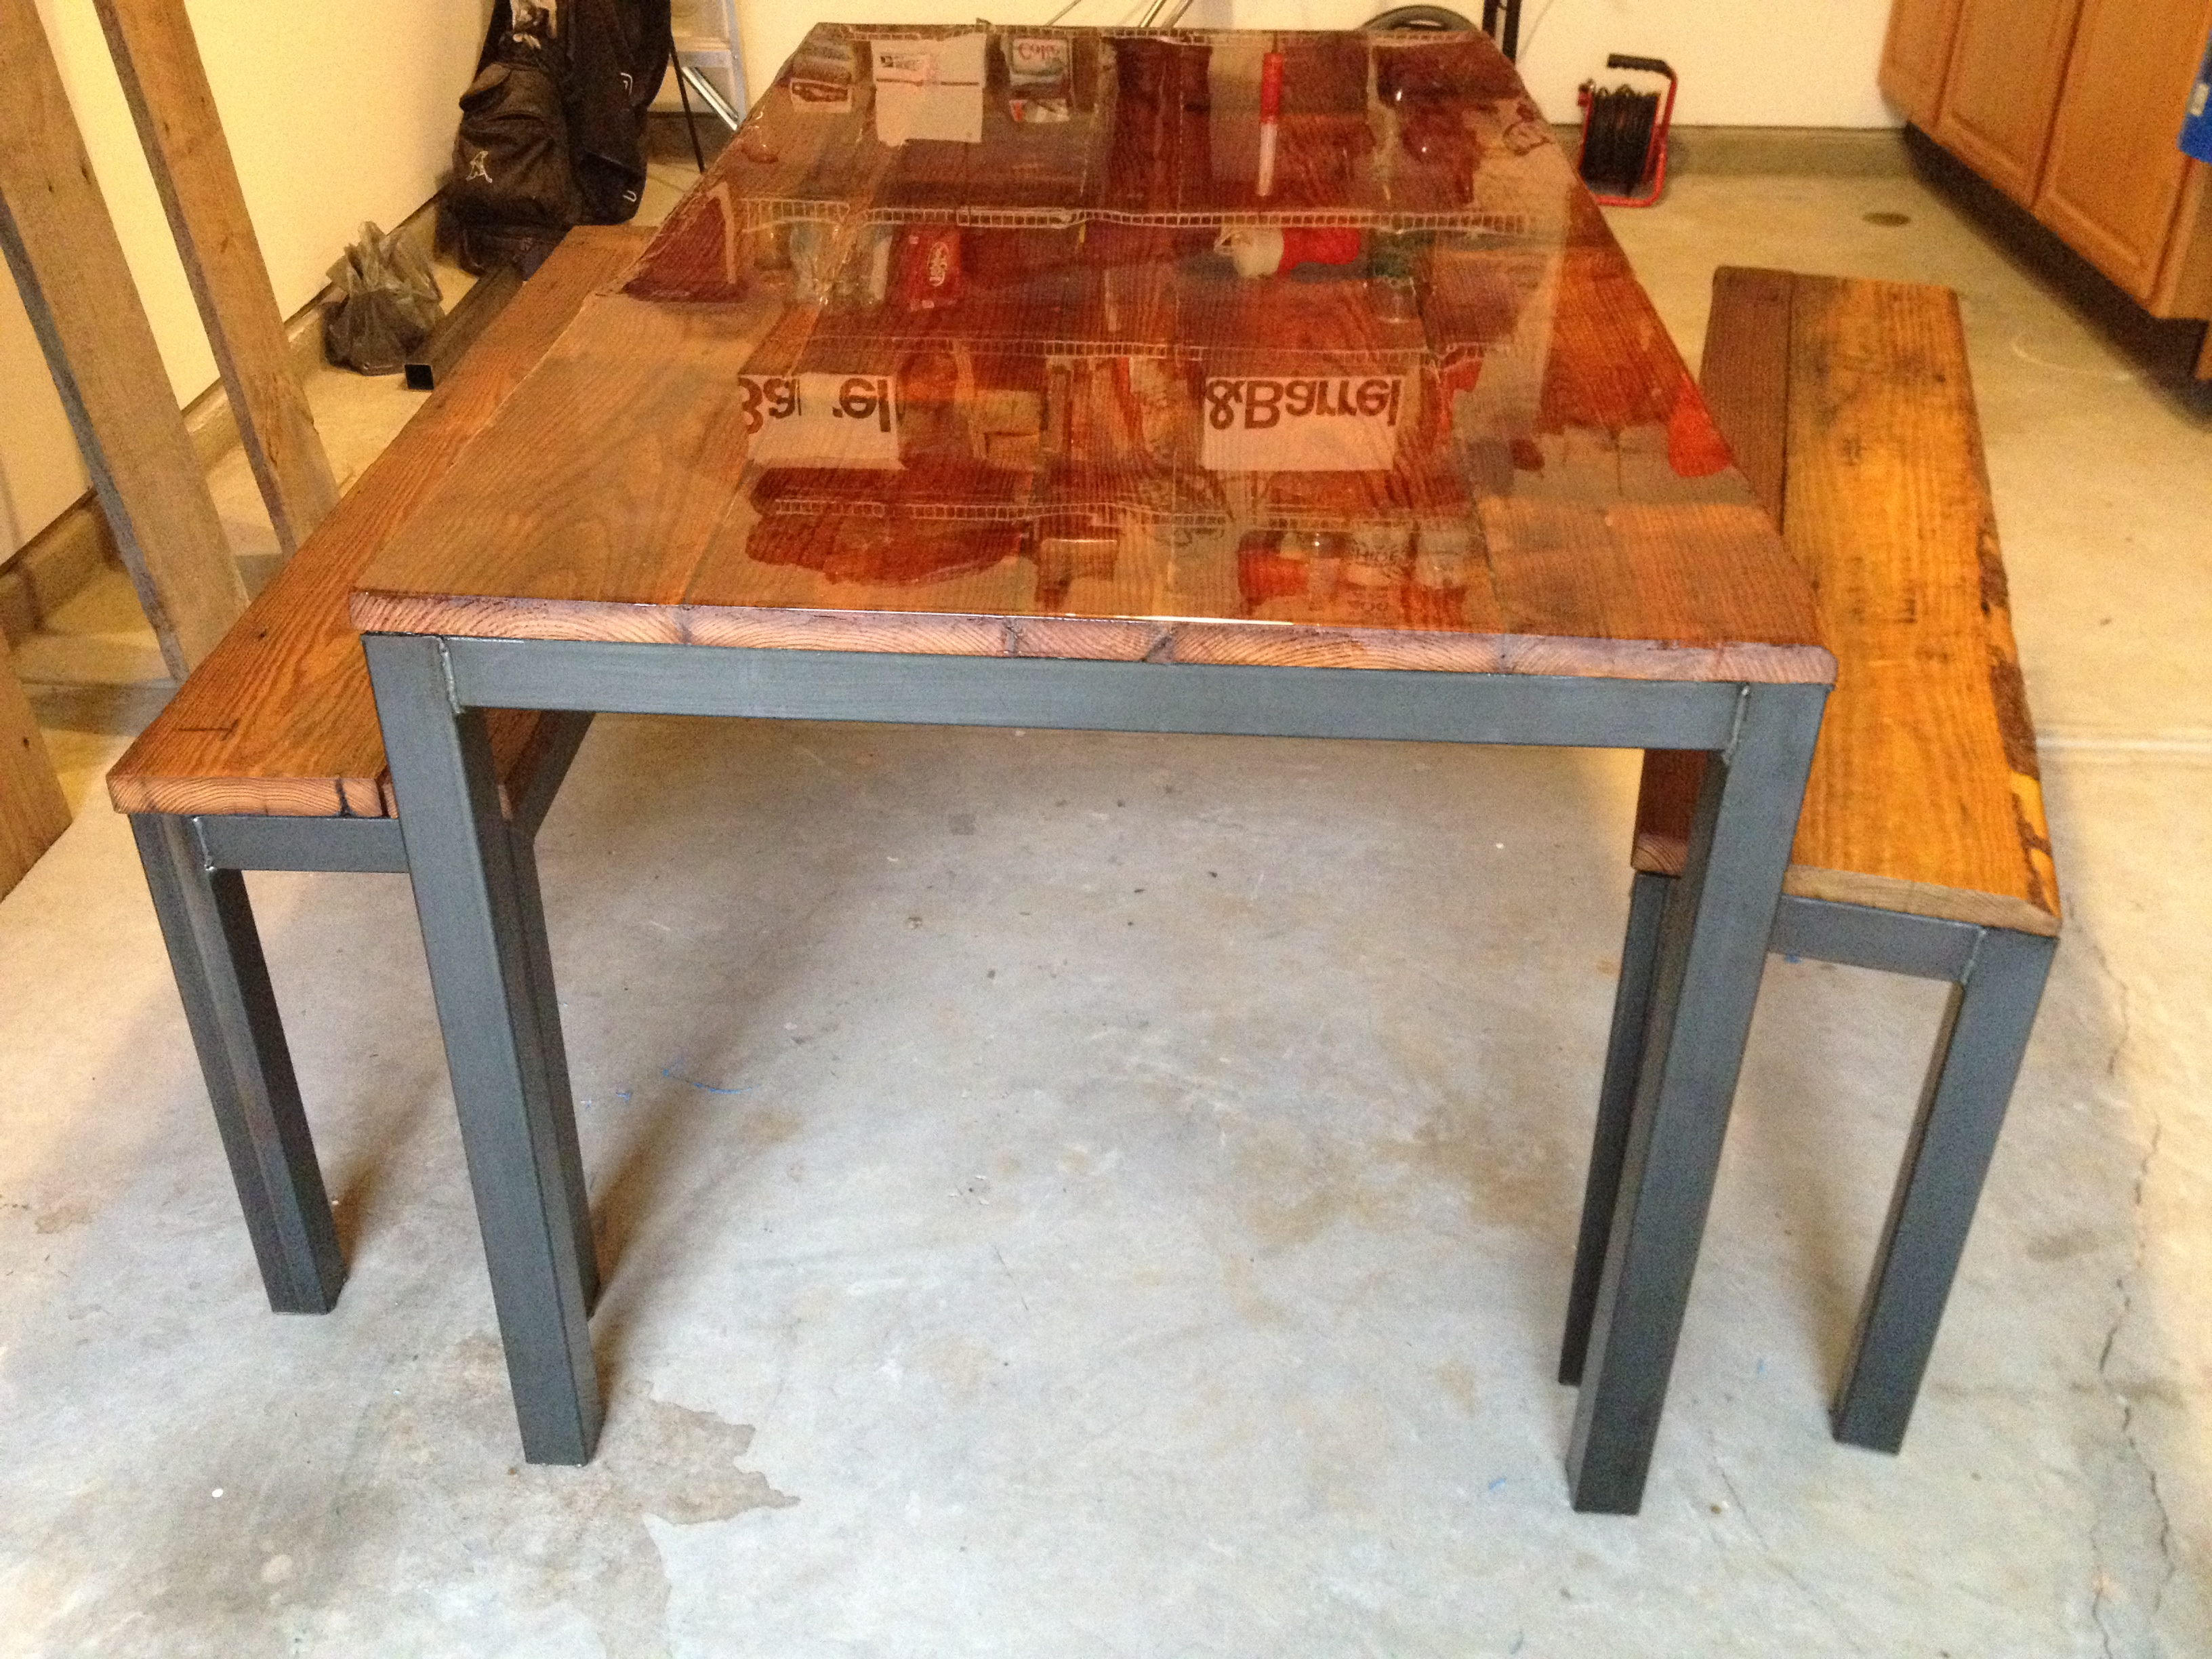 steel framed kitchen table and benches metal kitchen table Image Image Image